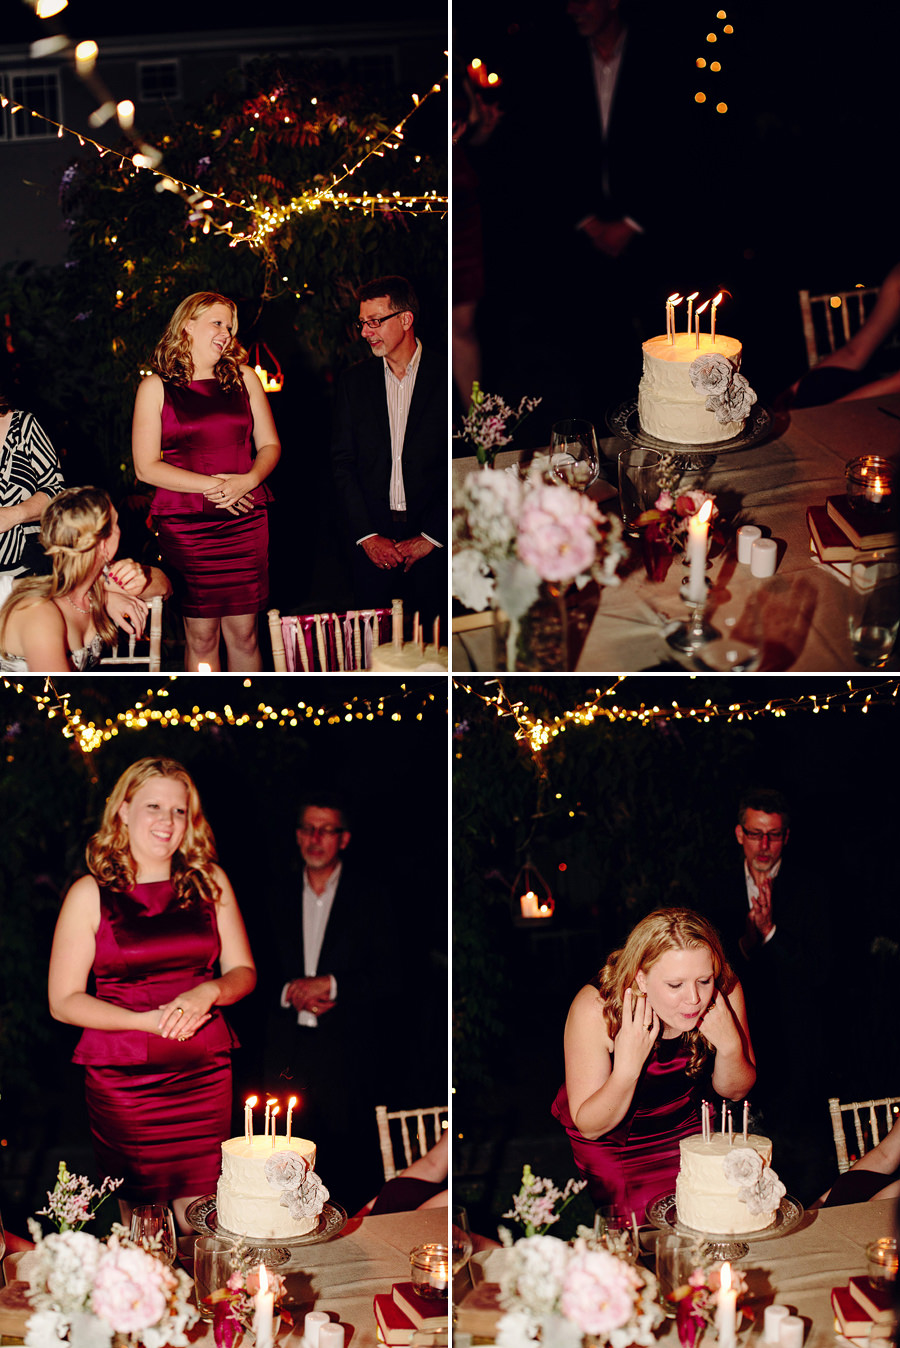 Sydney Function Photographer: Blowing out birthday candles